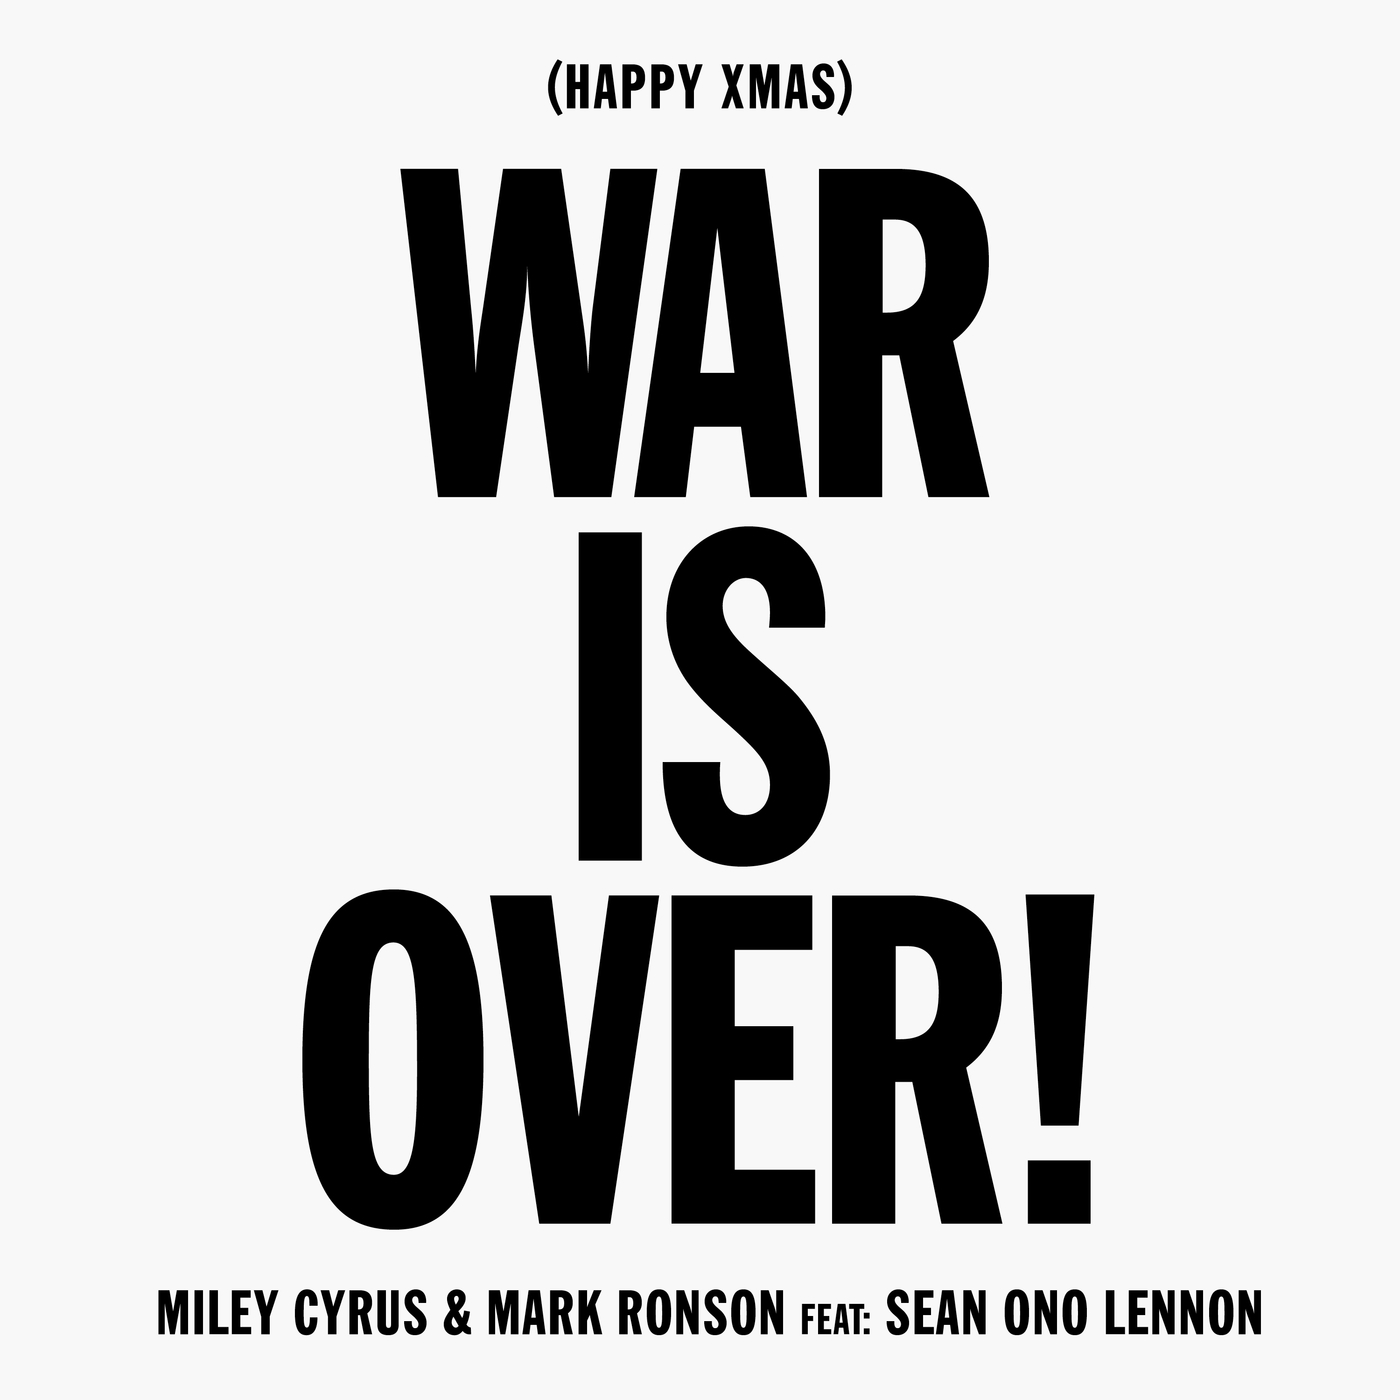 Happy Xmas (War Is Over) - Miley Cyrus